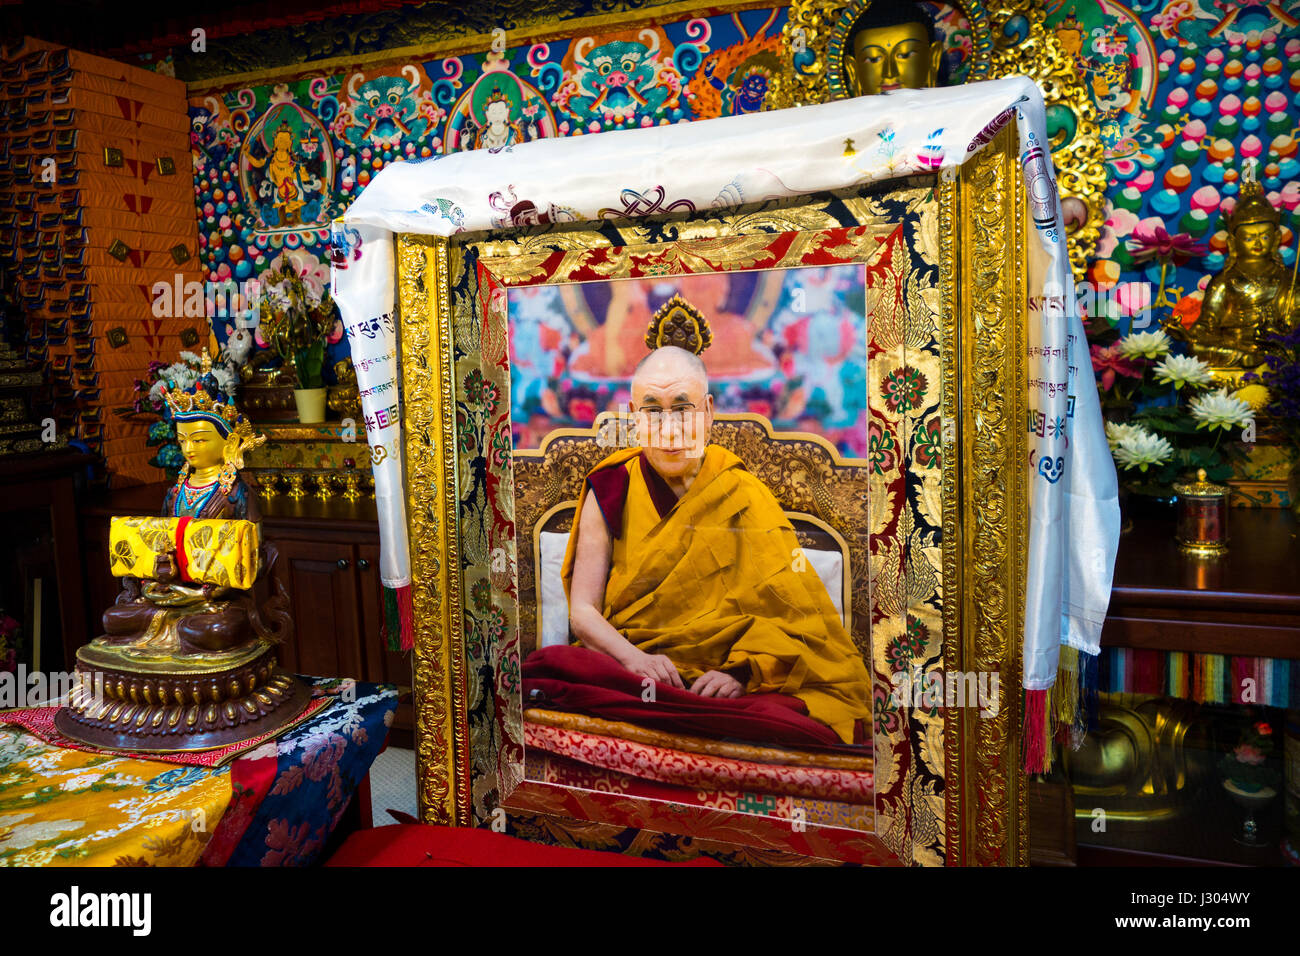 bloomington springs buddhist single men Buddhism & buddhism in china buddhism is an indian system of thought that was transmitted to china by central asian traders and buddhist monks as early as the first century ad.